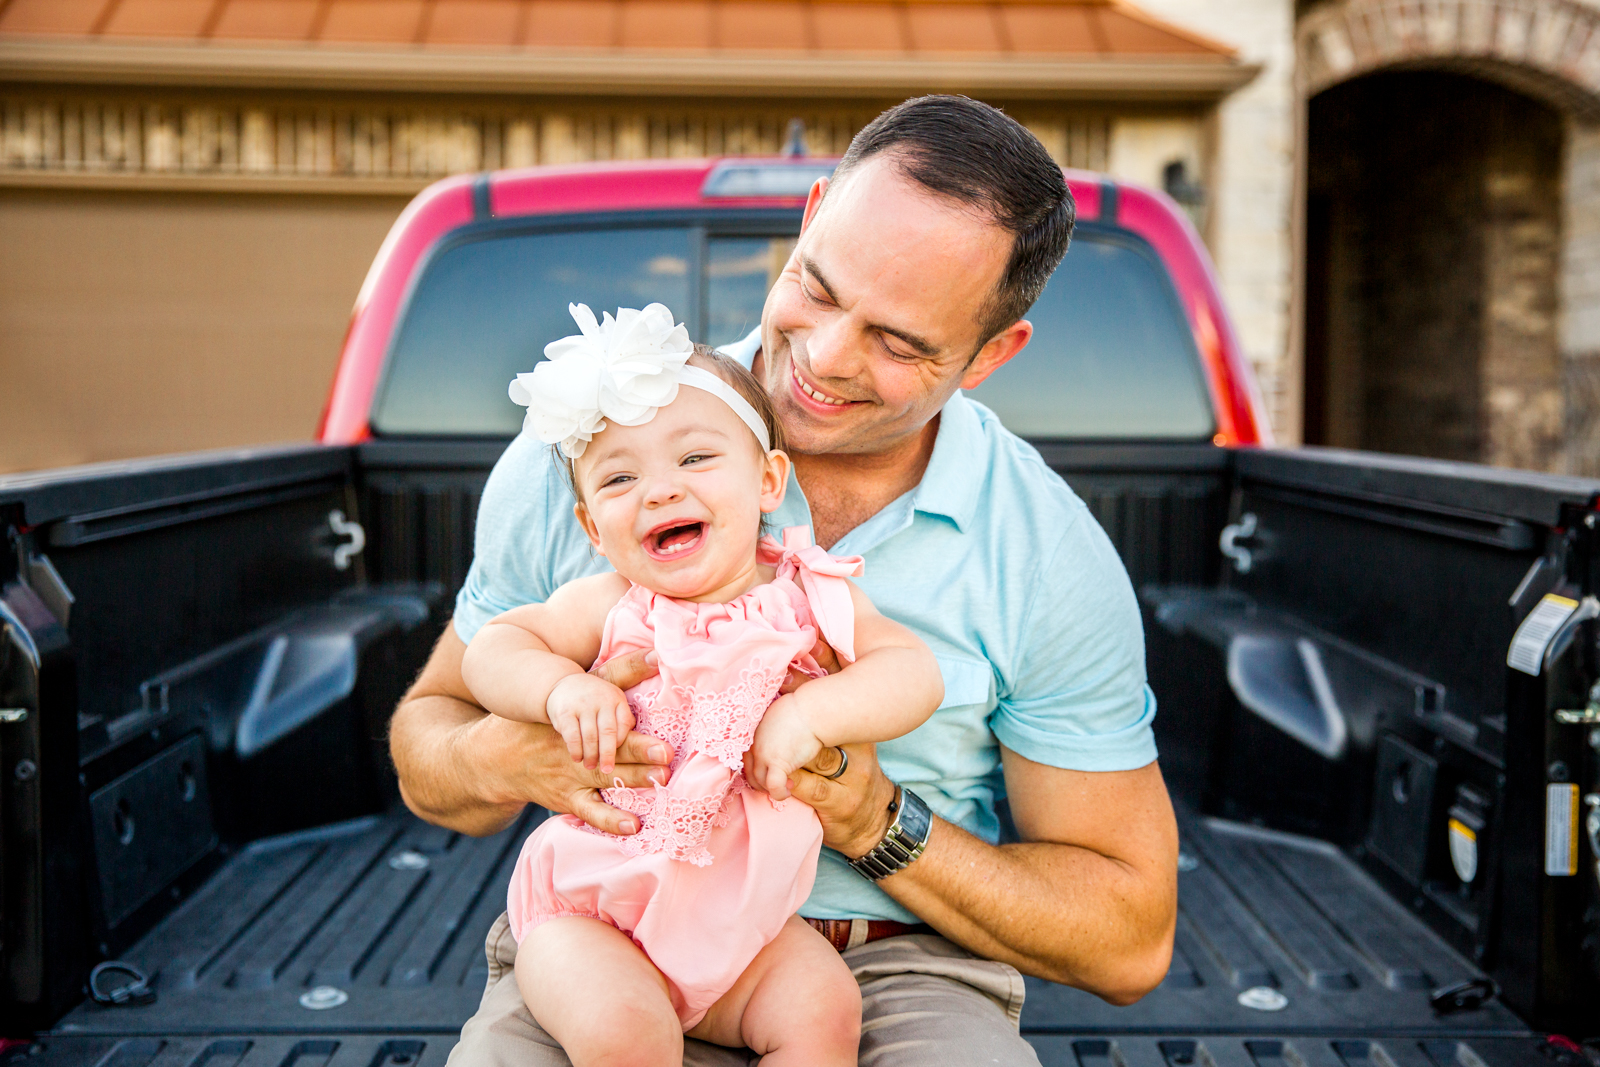 Daddy & Daugther Image